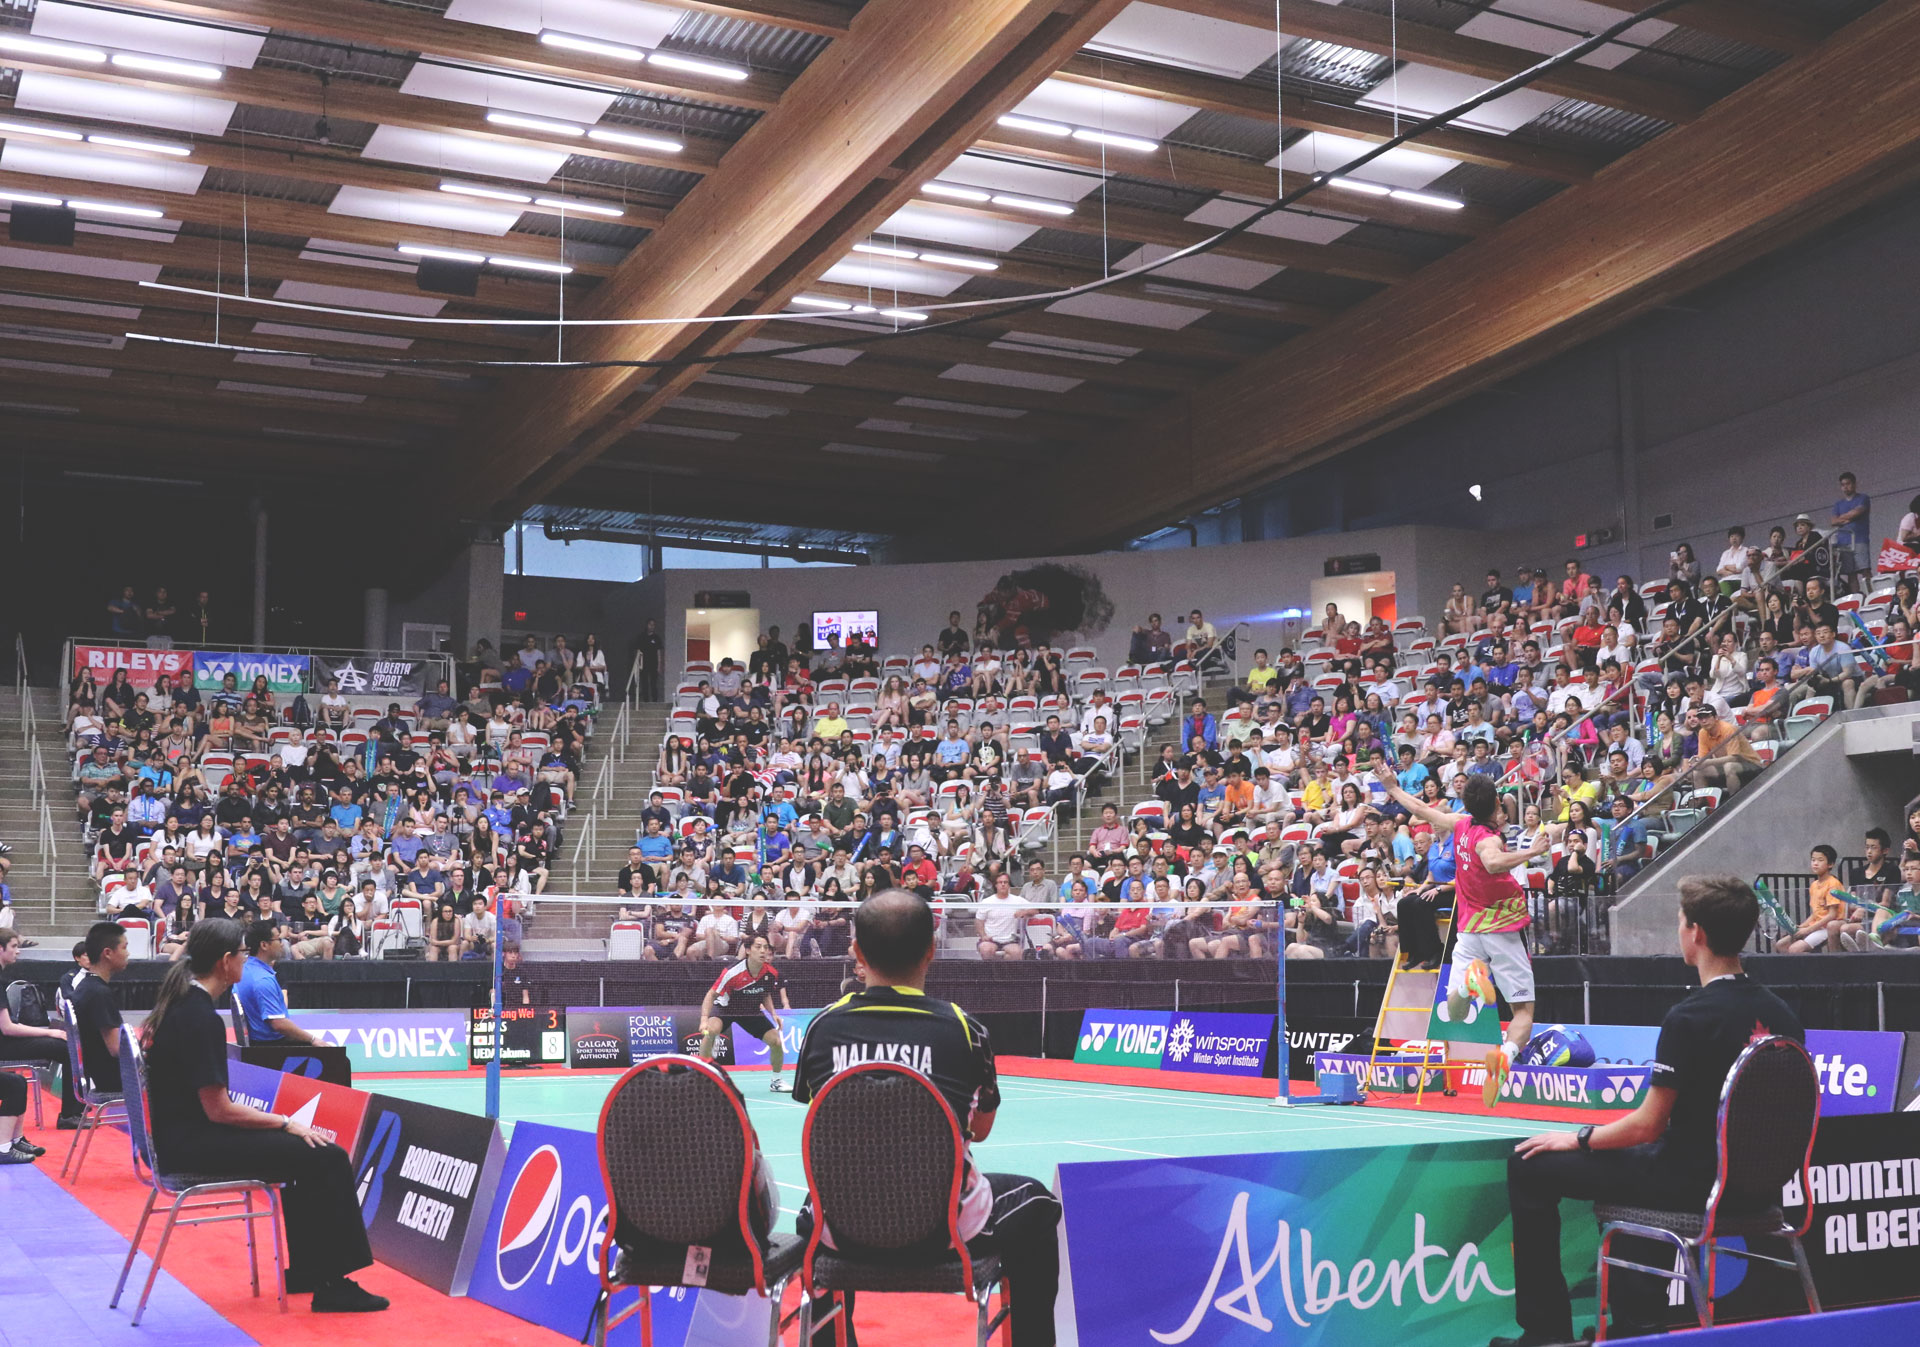 Badminton players from around the world play in the YONEX Canada Open.